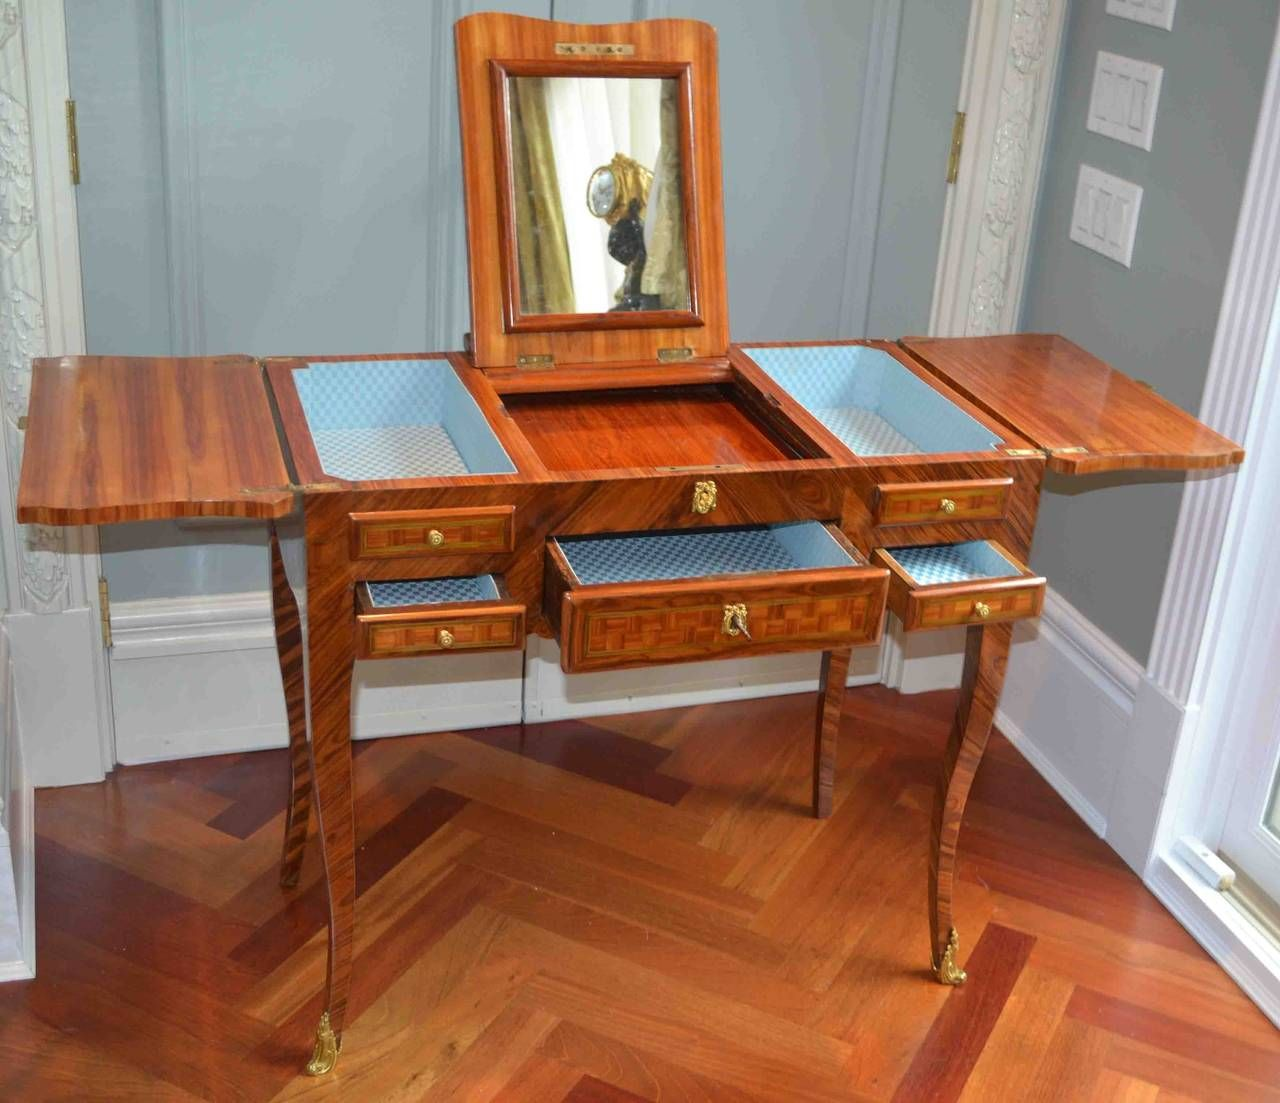 Dressing Coiffeuse 19thc French Coiffeuse Ladies Dressing Table Splish